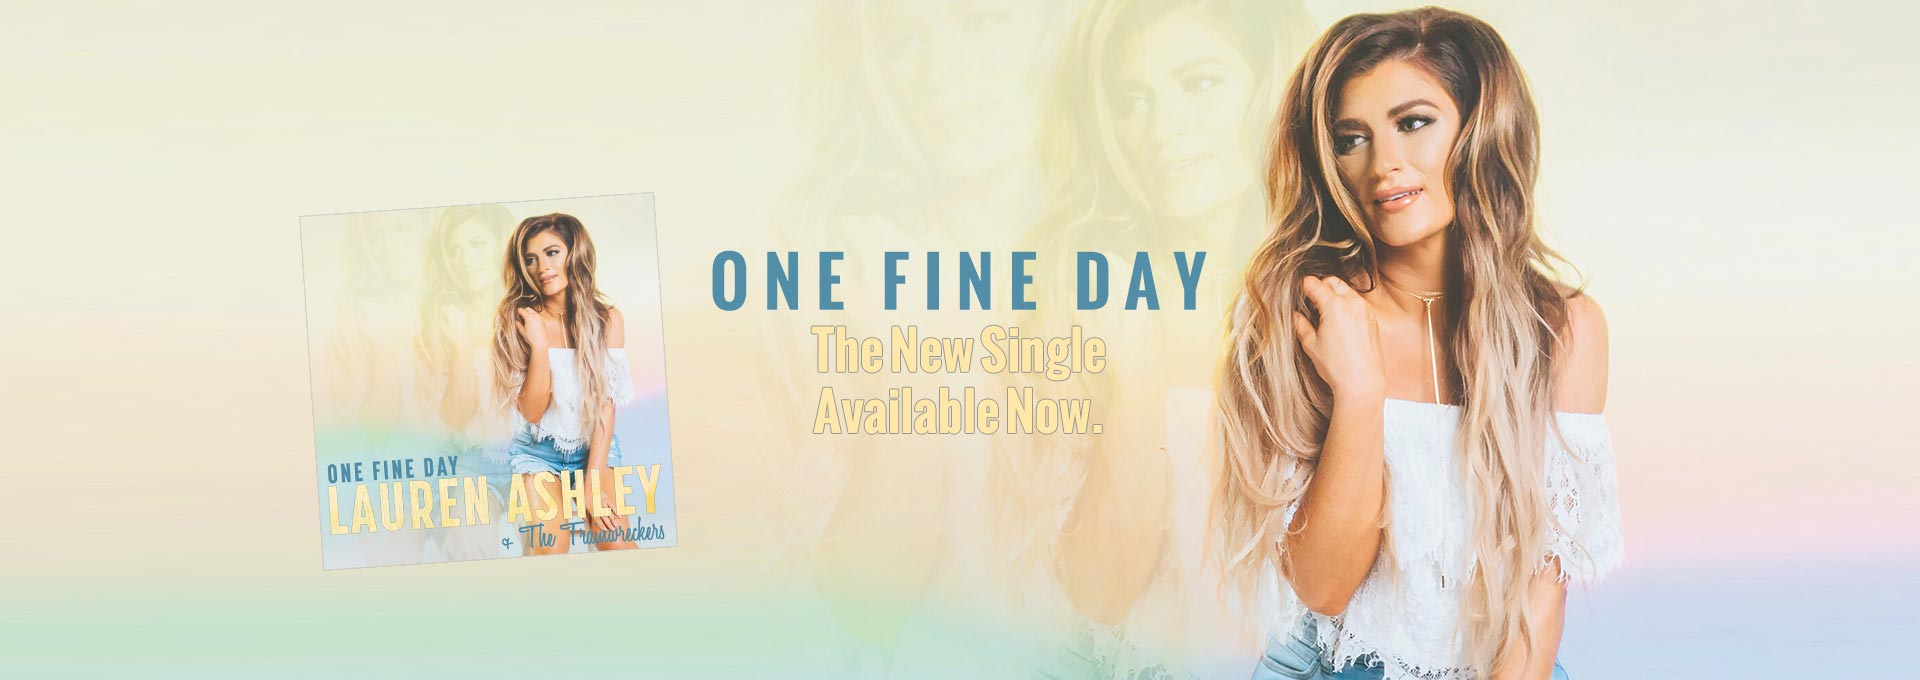 One Fine Day - the new single from Lauren Ashley